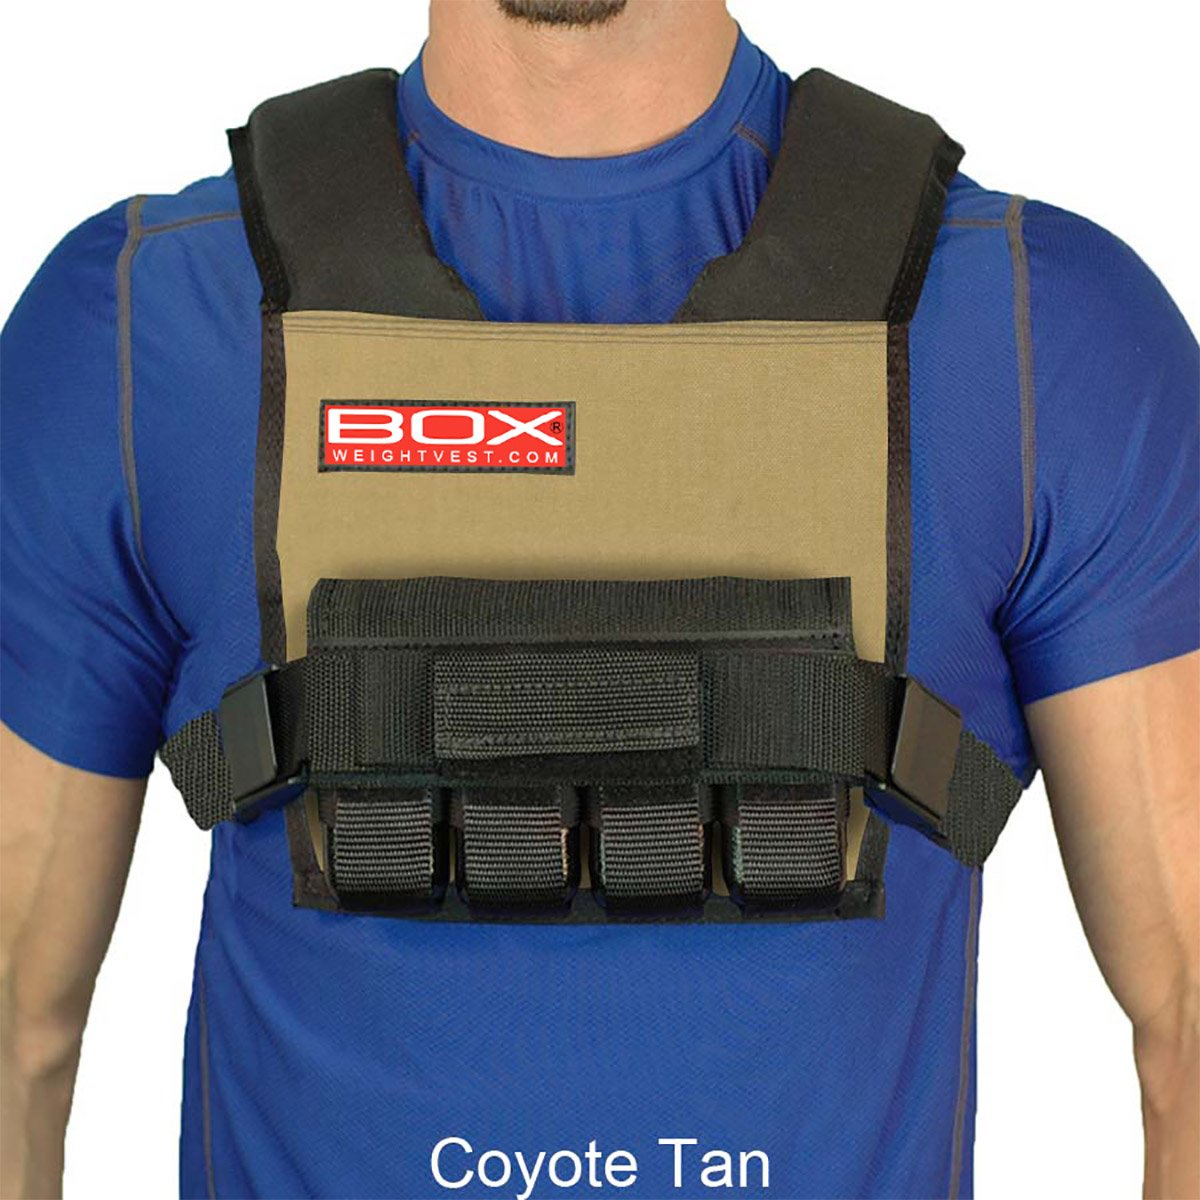 20 Lb. BOX Super Short - Vest (Coyote Tan)